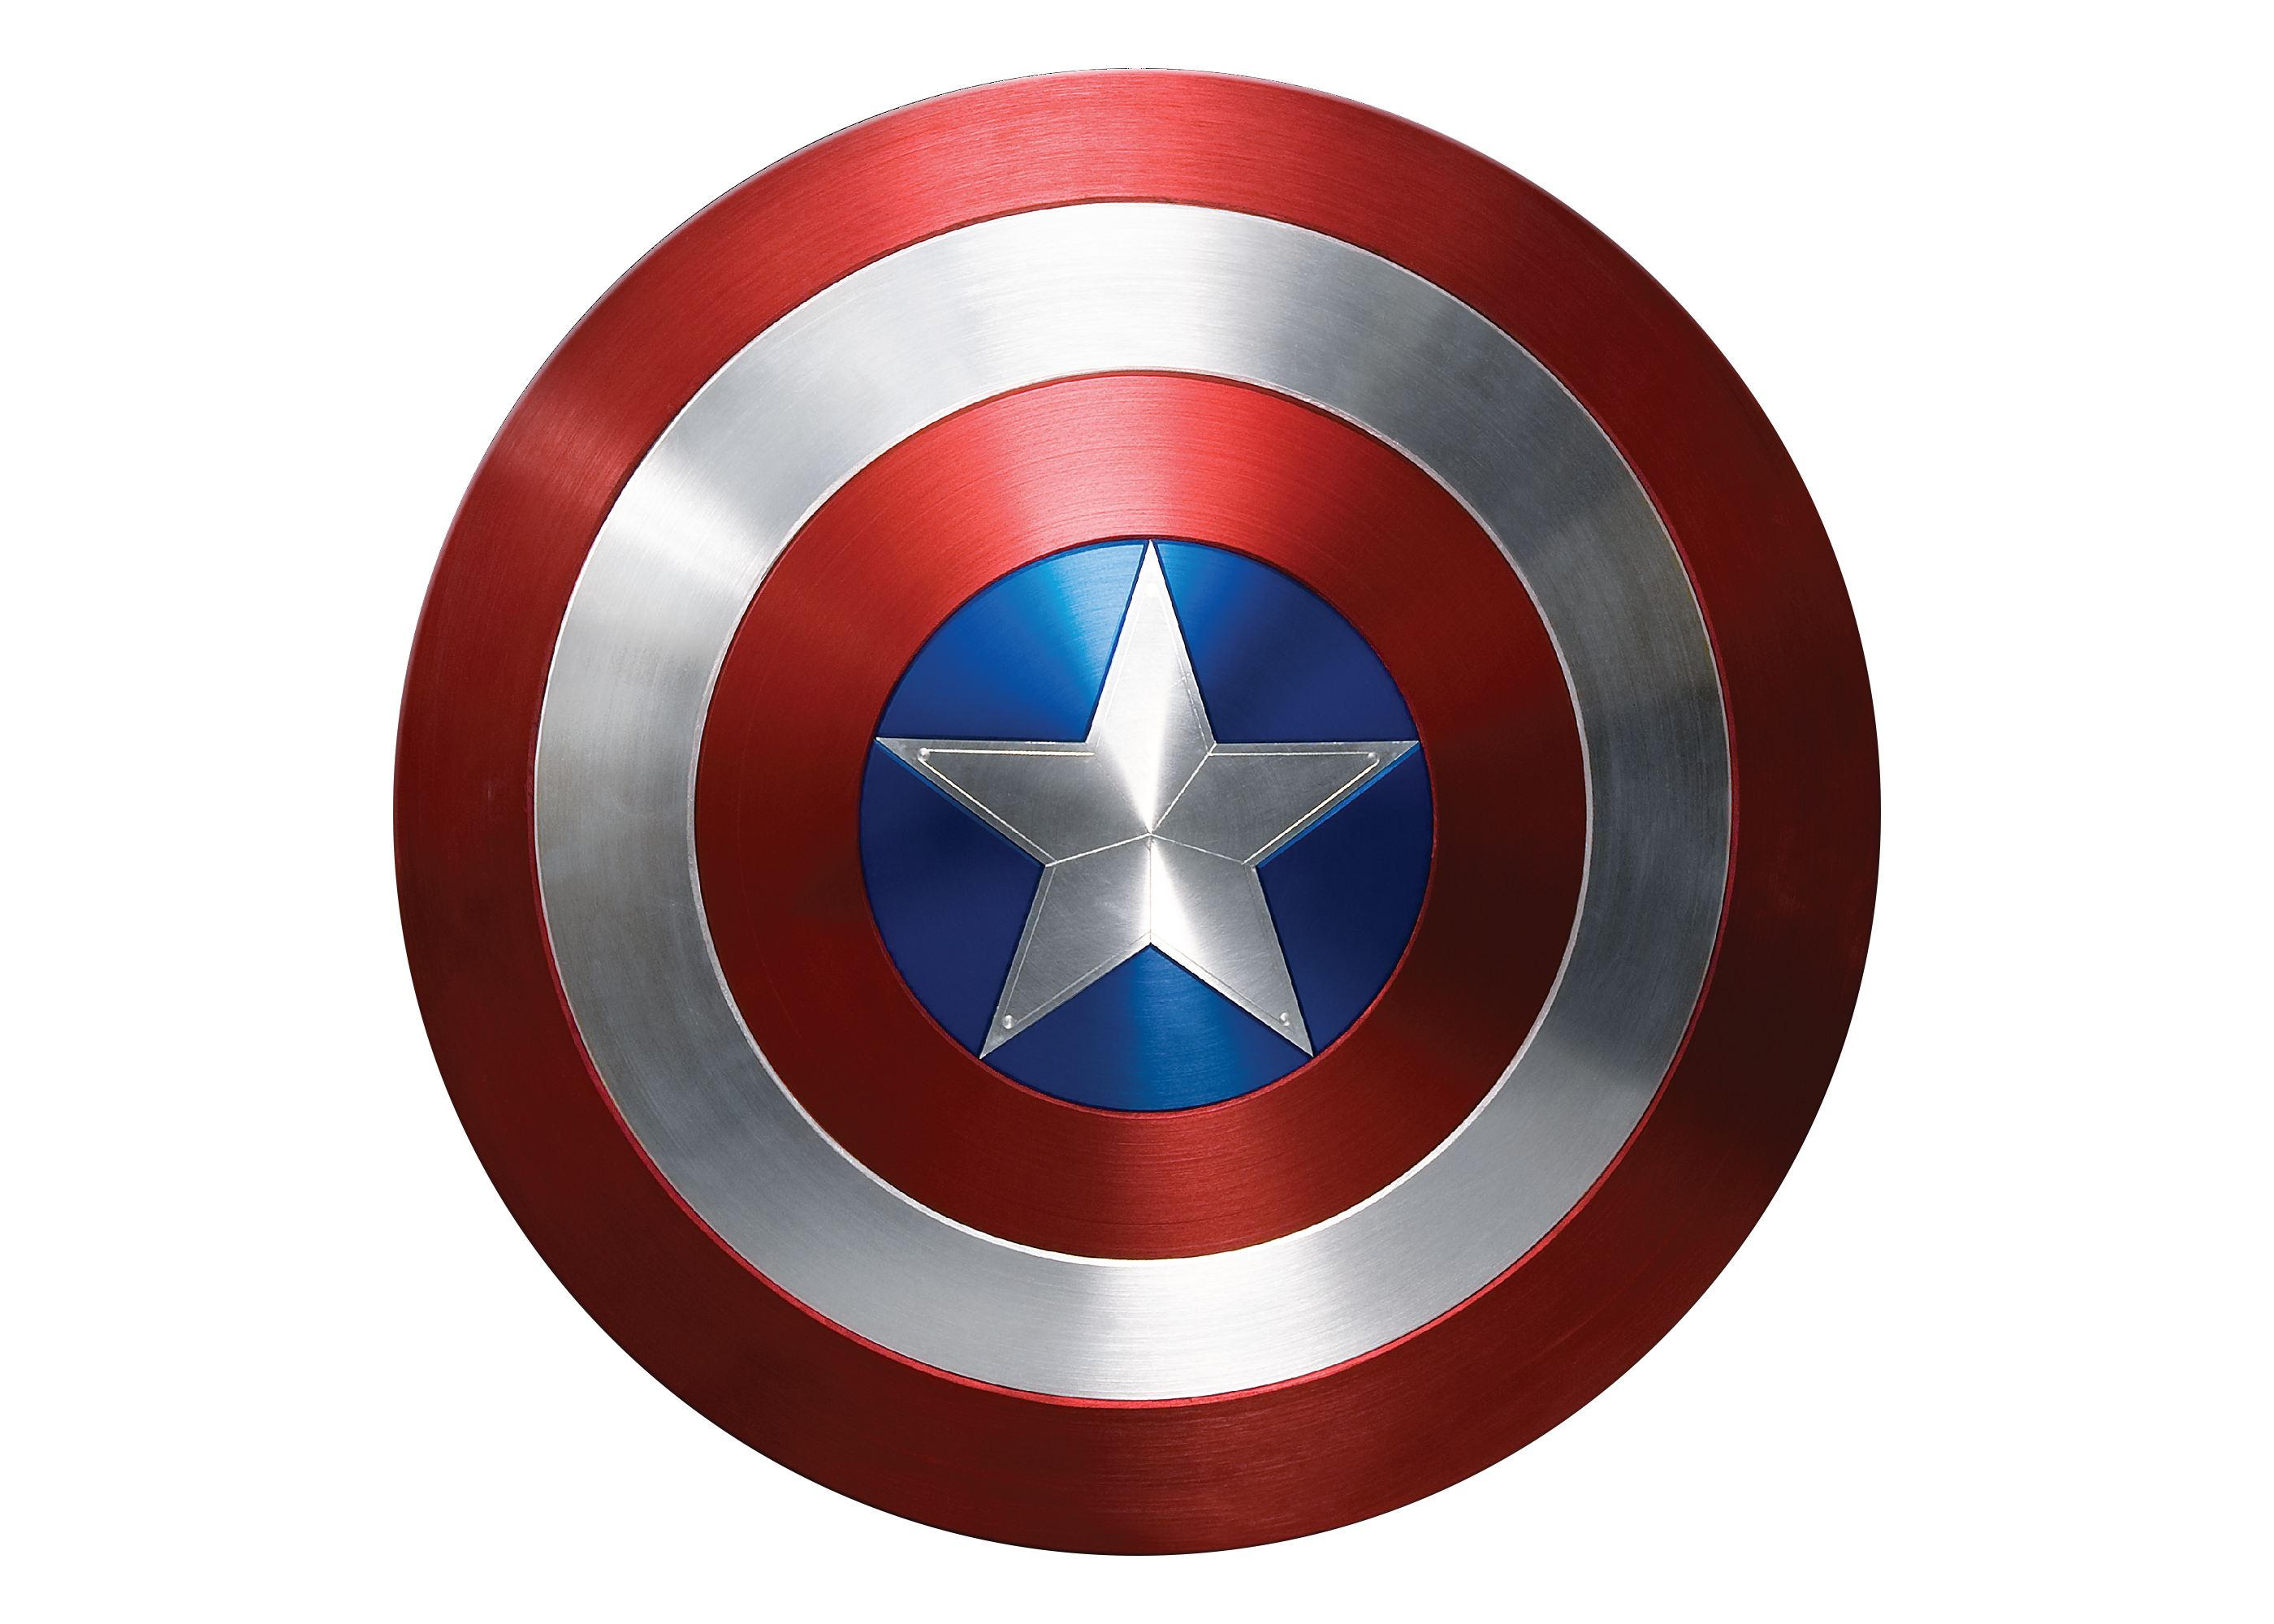 Car Photo Design >> Captain America Logo, Captain America Symbol, Meaning, History and Evolution